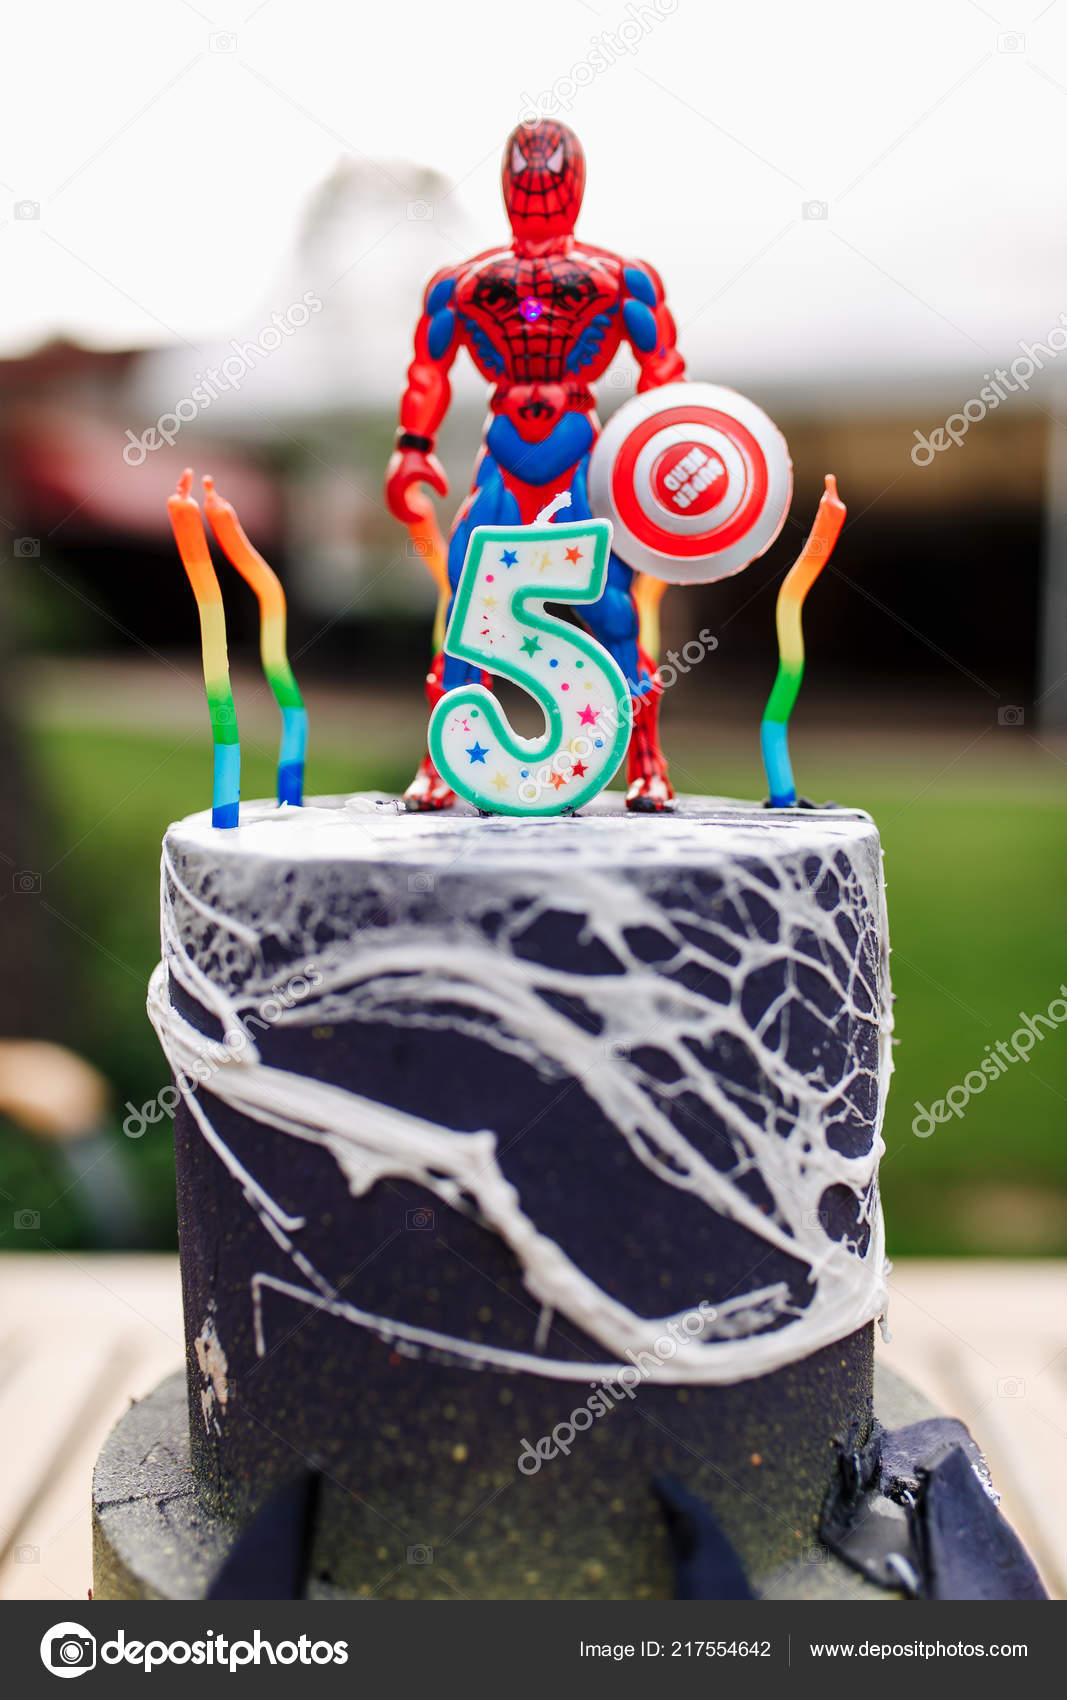 Cool Images Spider Man Cake 5 Year Baby Birthday Cake With Spiderman Funny Birthday Cards Online Inifofree Goldxyz